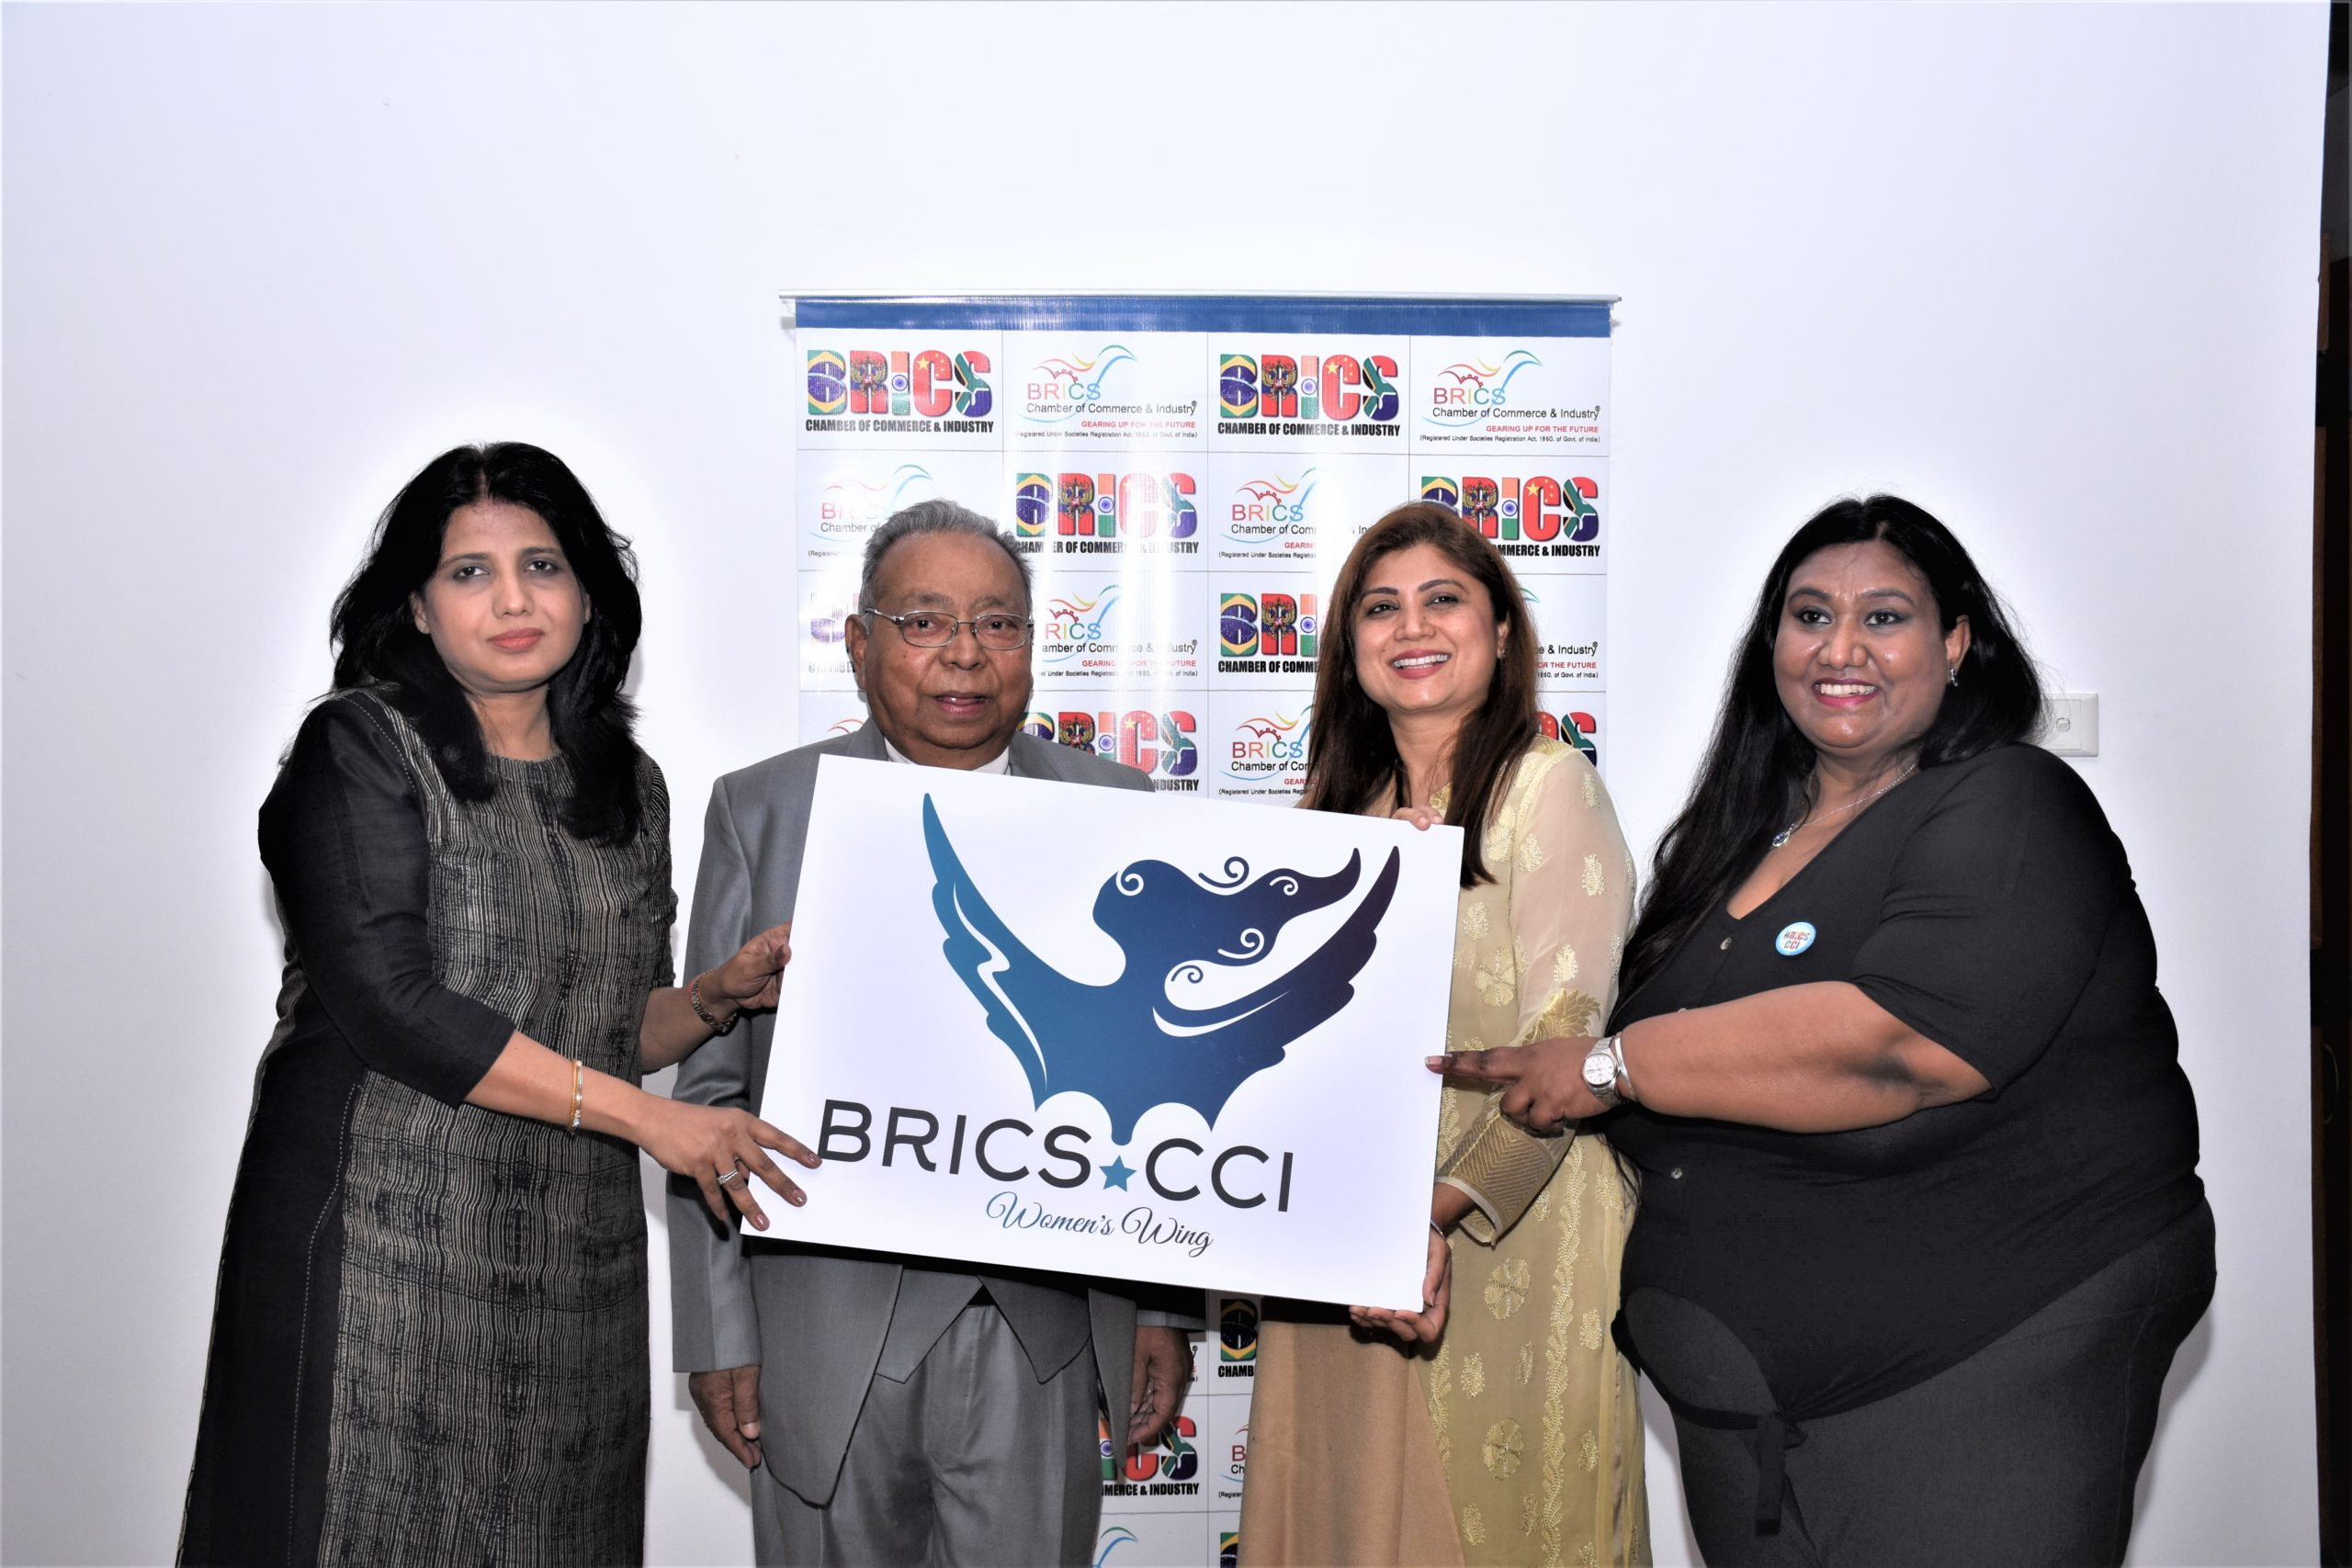 BRICS CCI Announces Launch of BRICS CCI Women's Wing to create an enabling support system for women entrepreneurs and professionals across geographies